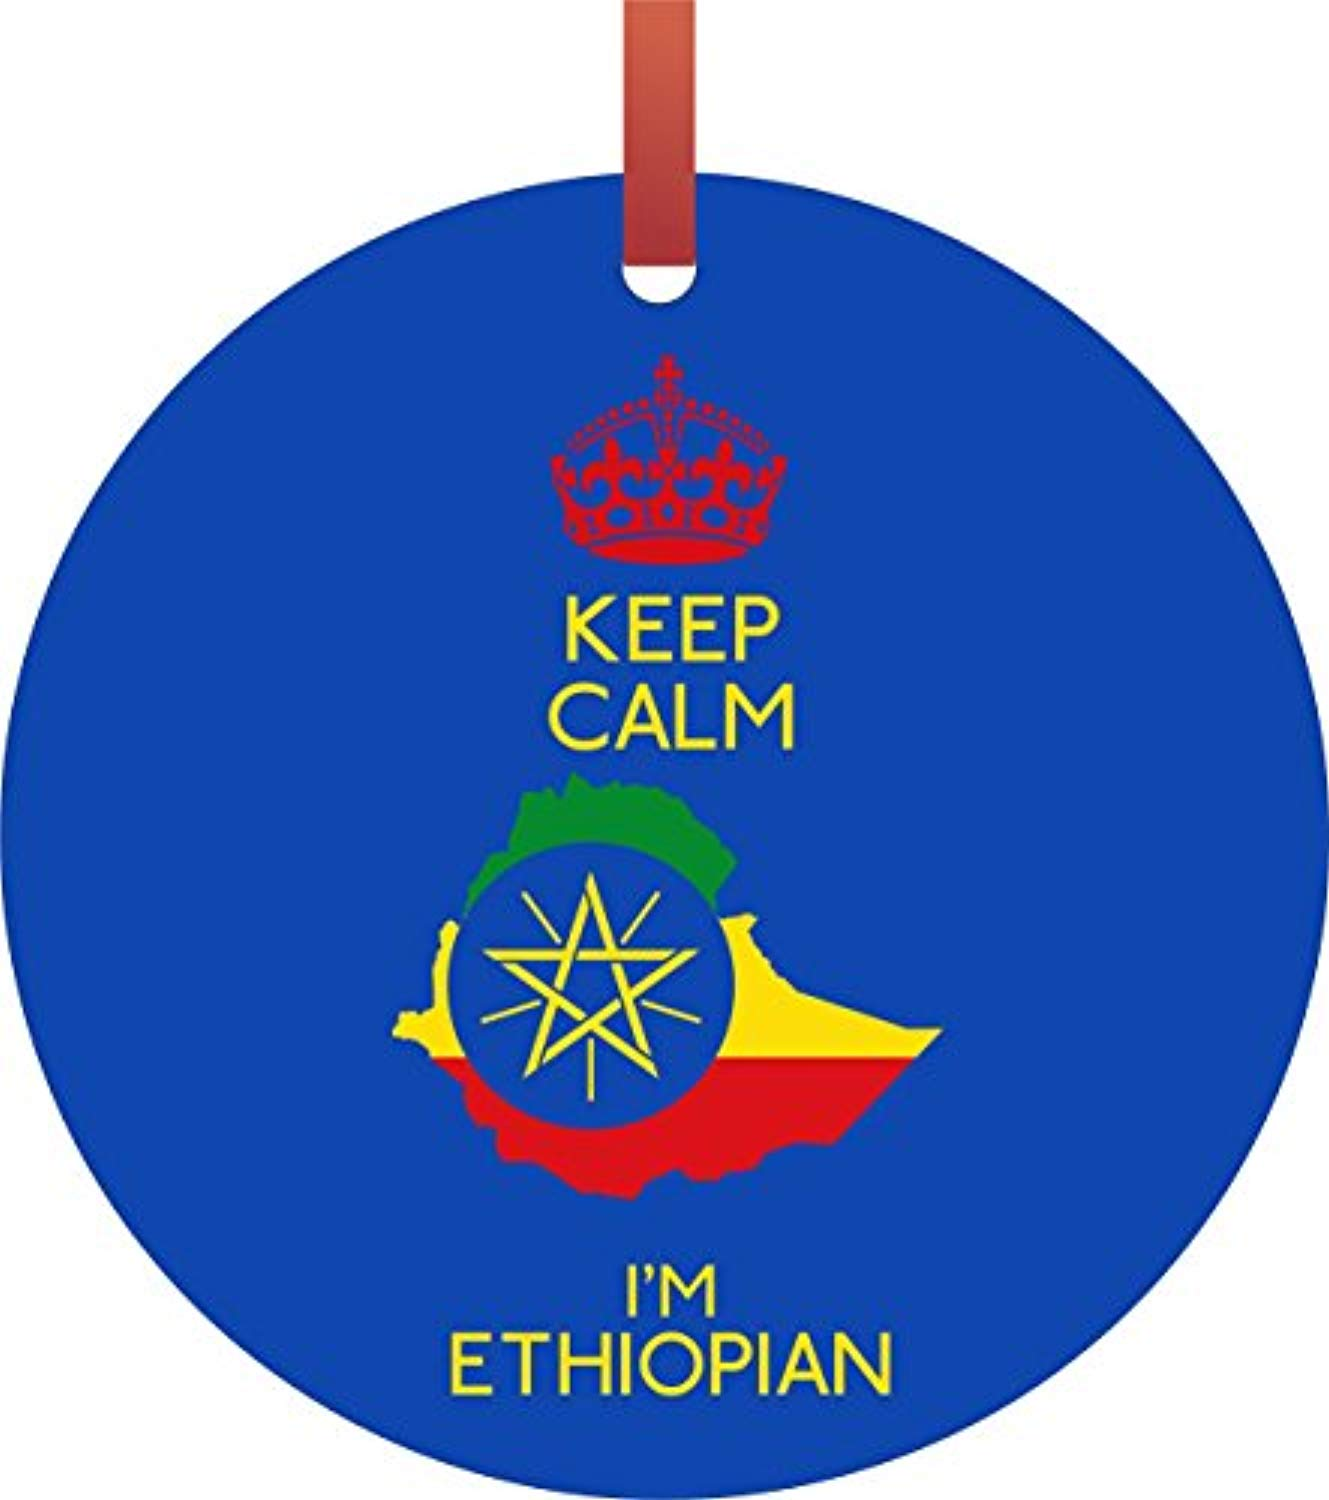 Keep Calm I'm Ethiopian - Jacks Outlet TM Flat Round-Shaped Double-Sided Aluminum Hanging Holiday Tree Ornament Made in the U.S.A. - Ufumbuzi - Home